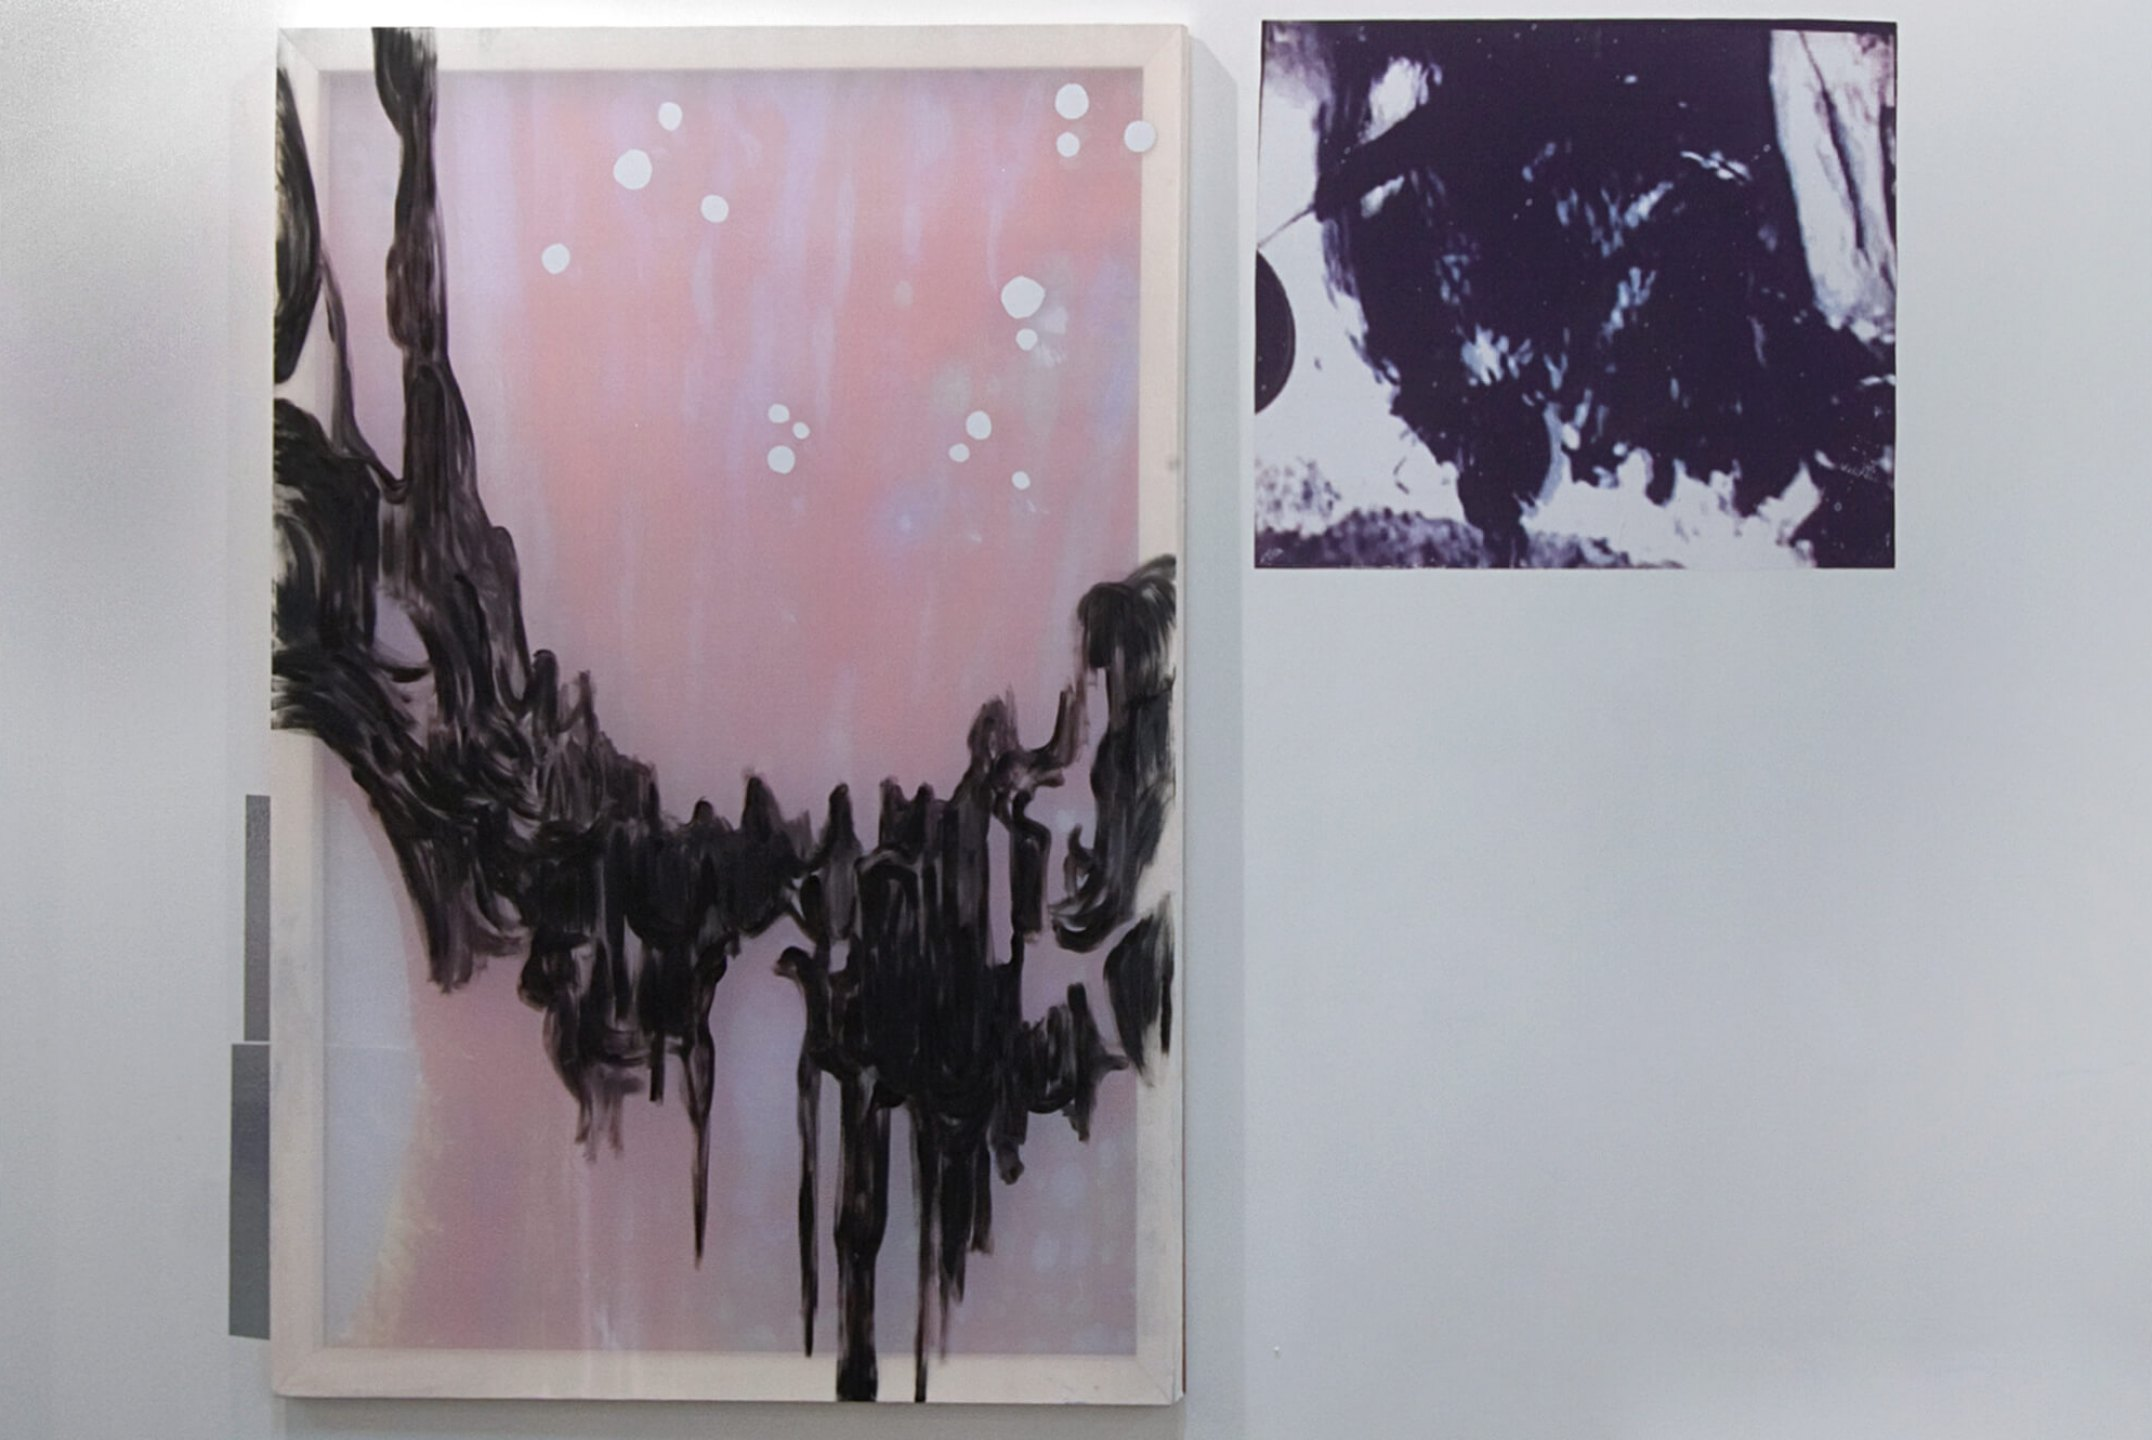 Marina Perez Simão, <em>Untitled</em>, 2013,&nbsp;acrylic on plastic, polyester, reflective paper and printing on reflective paper, 178&nbsp;× 230 cm&nbsp; - Mendes Wood DM